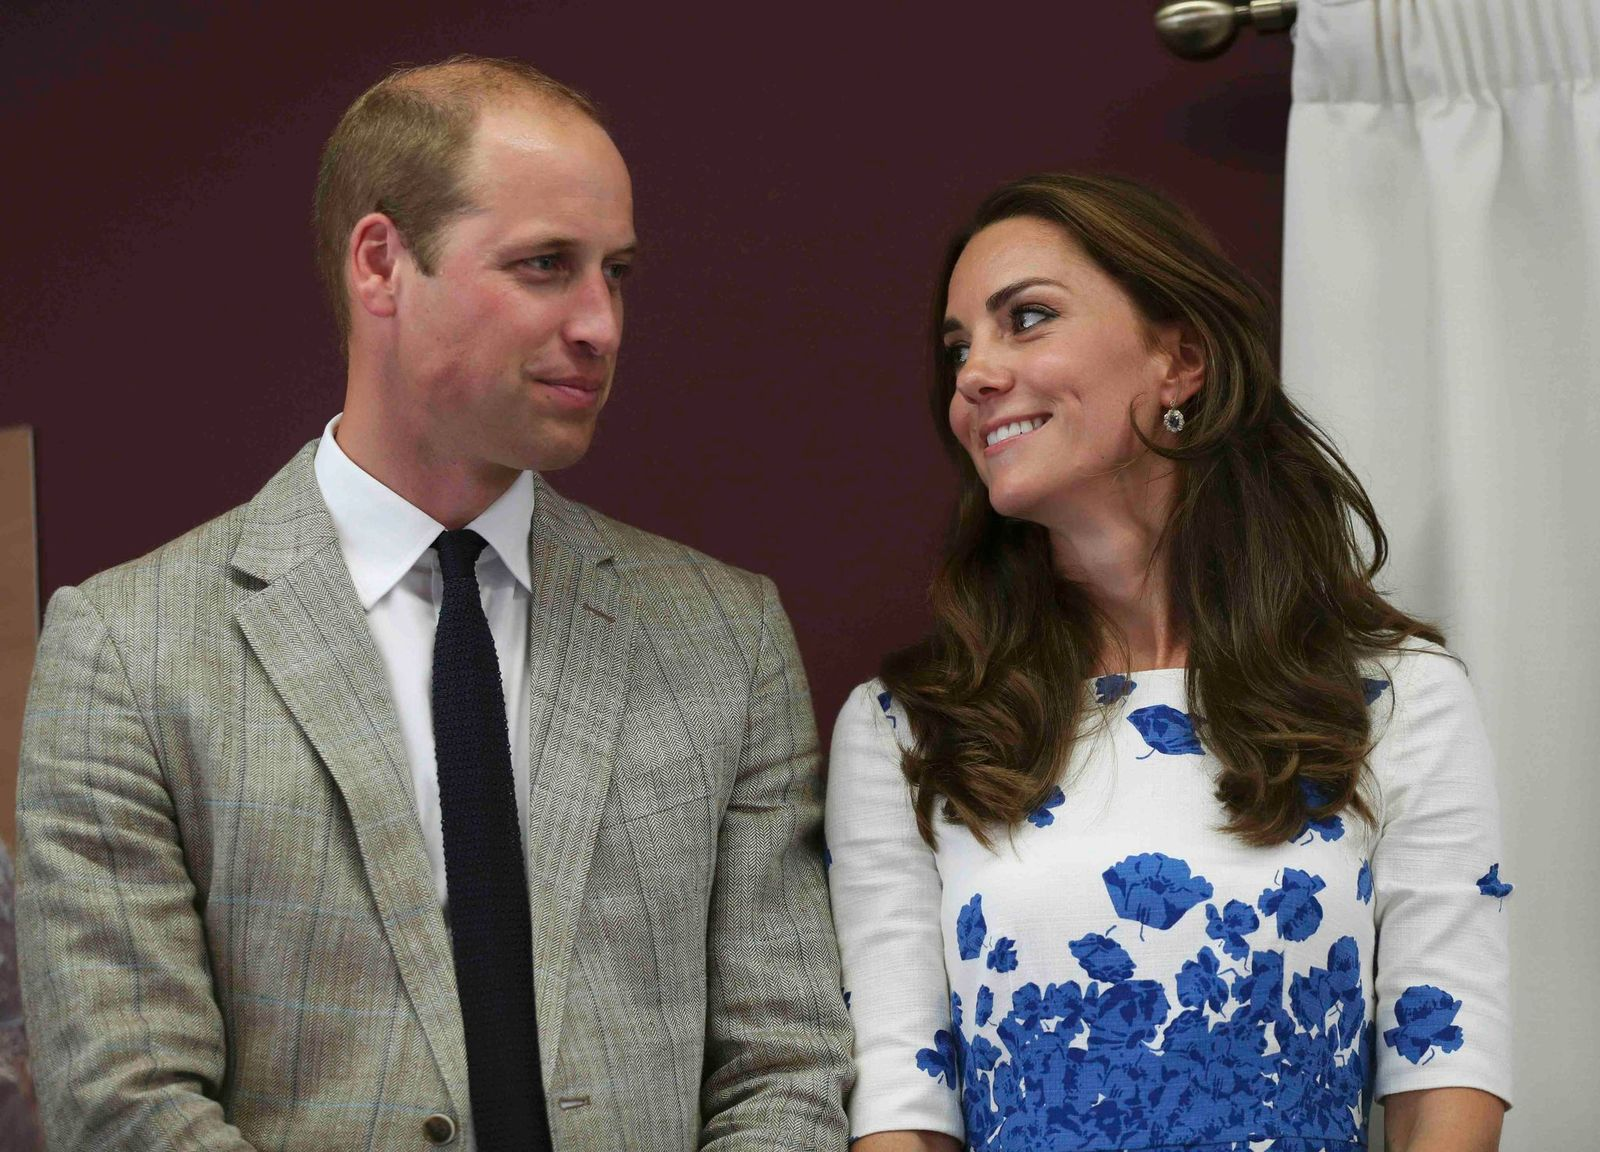 Kate Middleton and Prince Willaim listen to a speech during their visit to Keech Hospice Care on August 24, 2016. | Getty Images